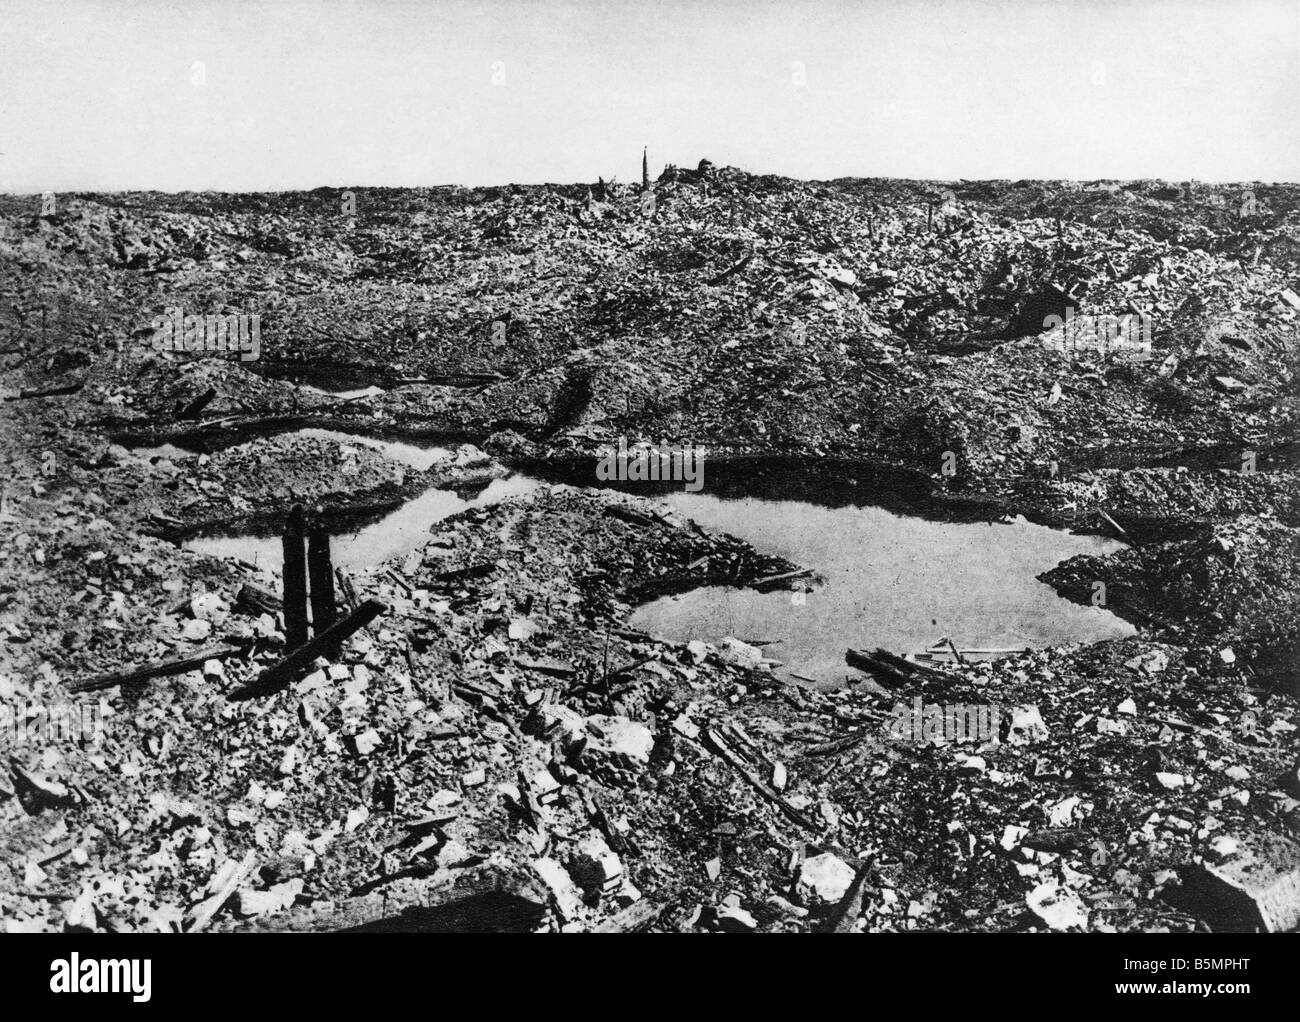 9 1916 11 1 A1 E The destroyed Fort Vaux 1916 World War 1 Western Front Battle of Verdun 1916 The destroyed Fort - Stock Image